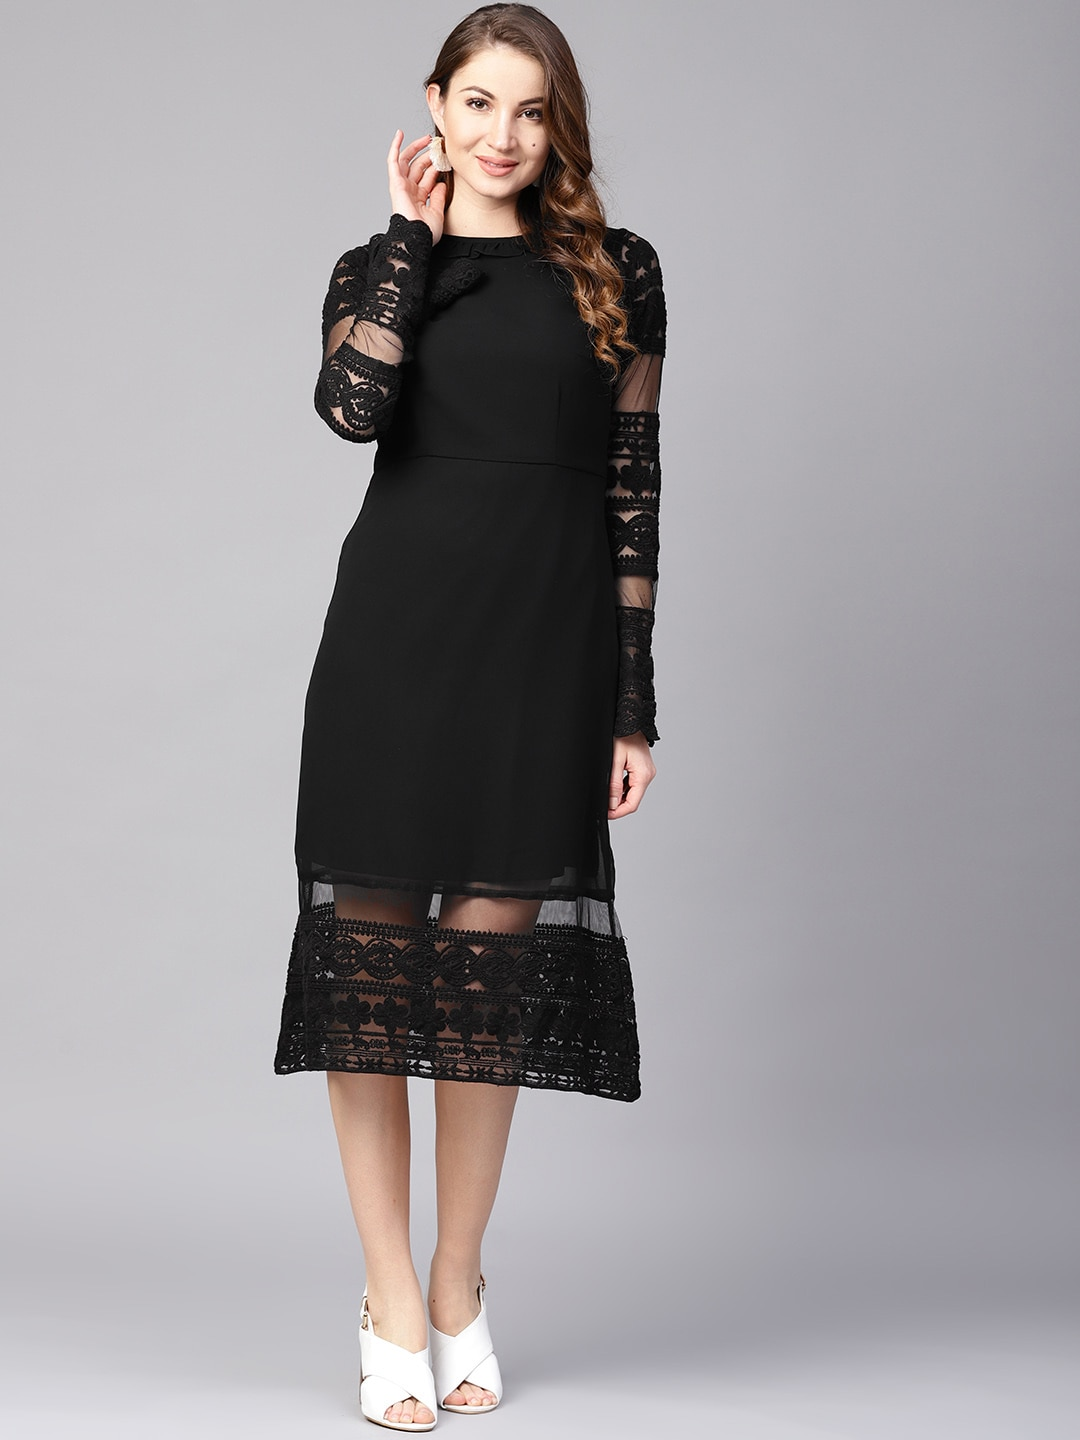 Black Dress - Buy Black Dresses For Women in India  0bf3016cb